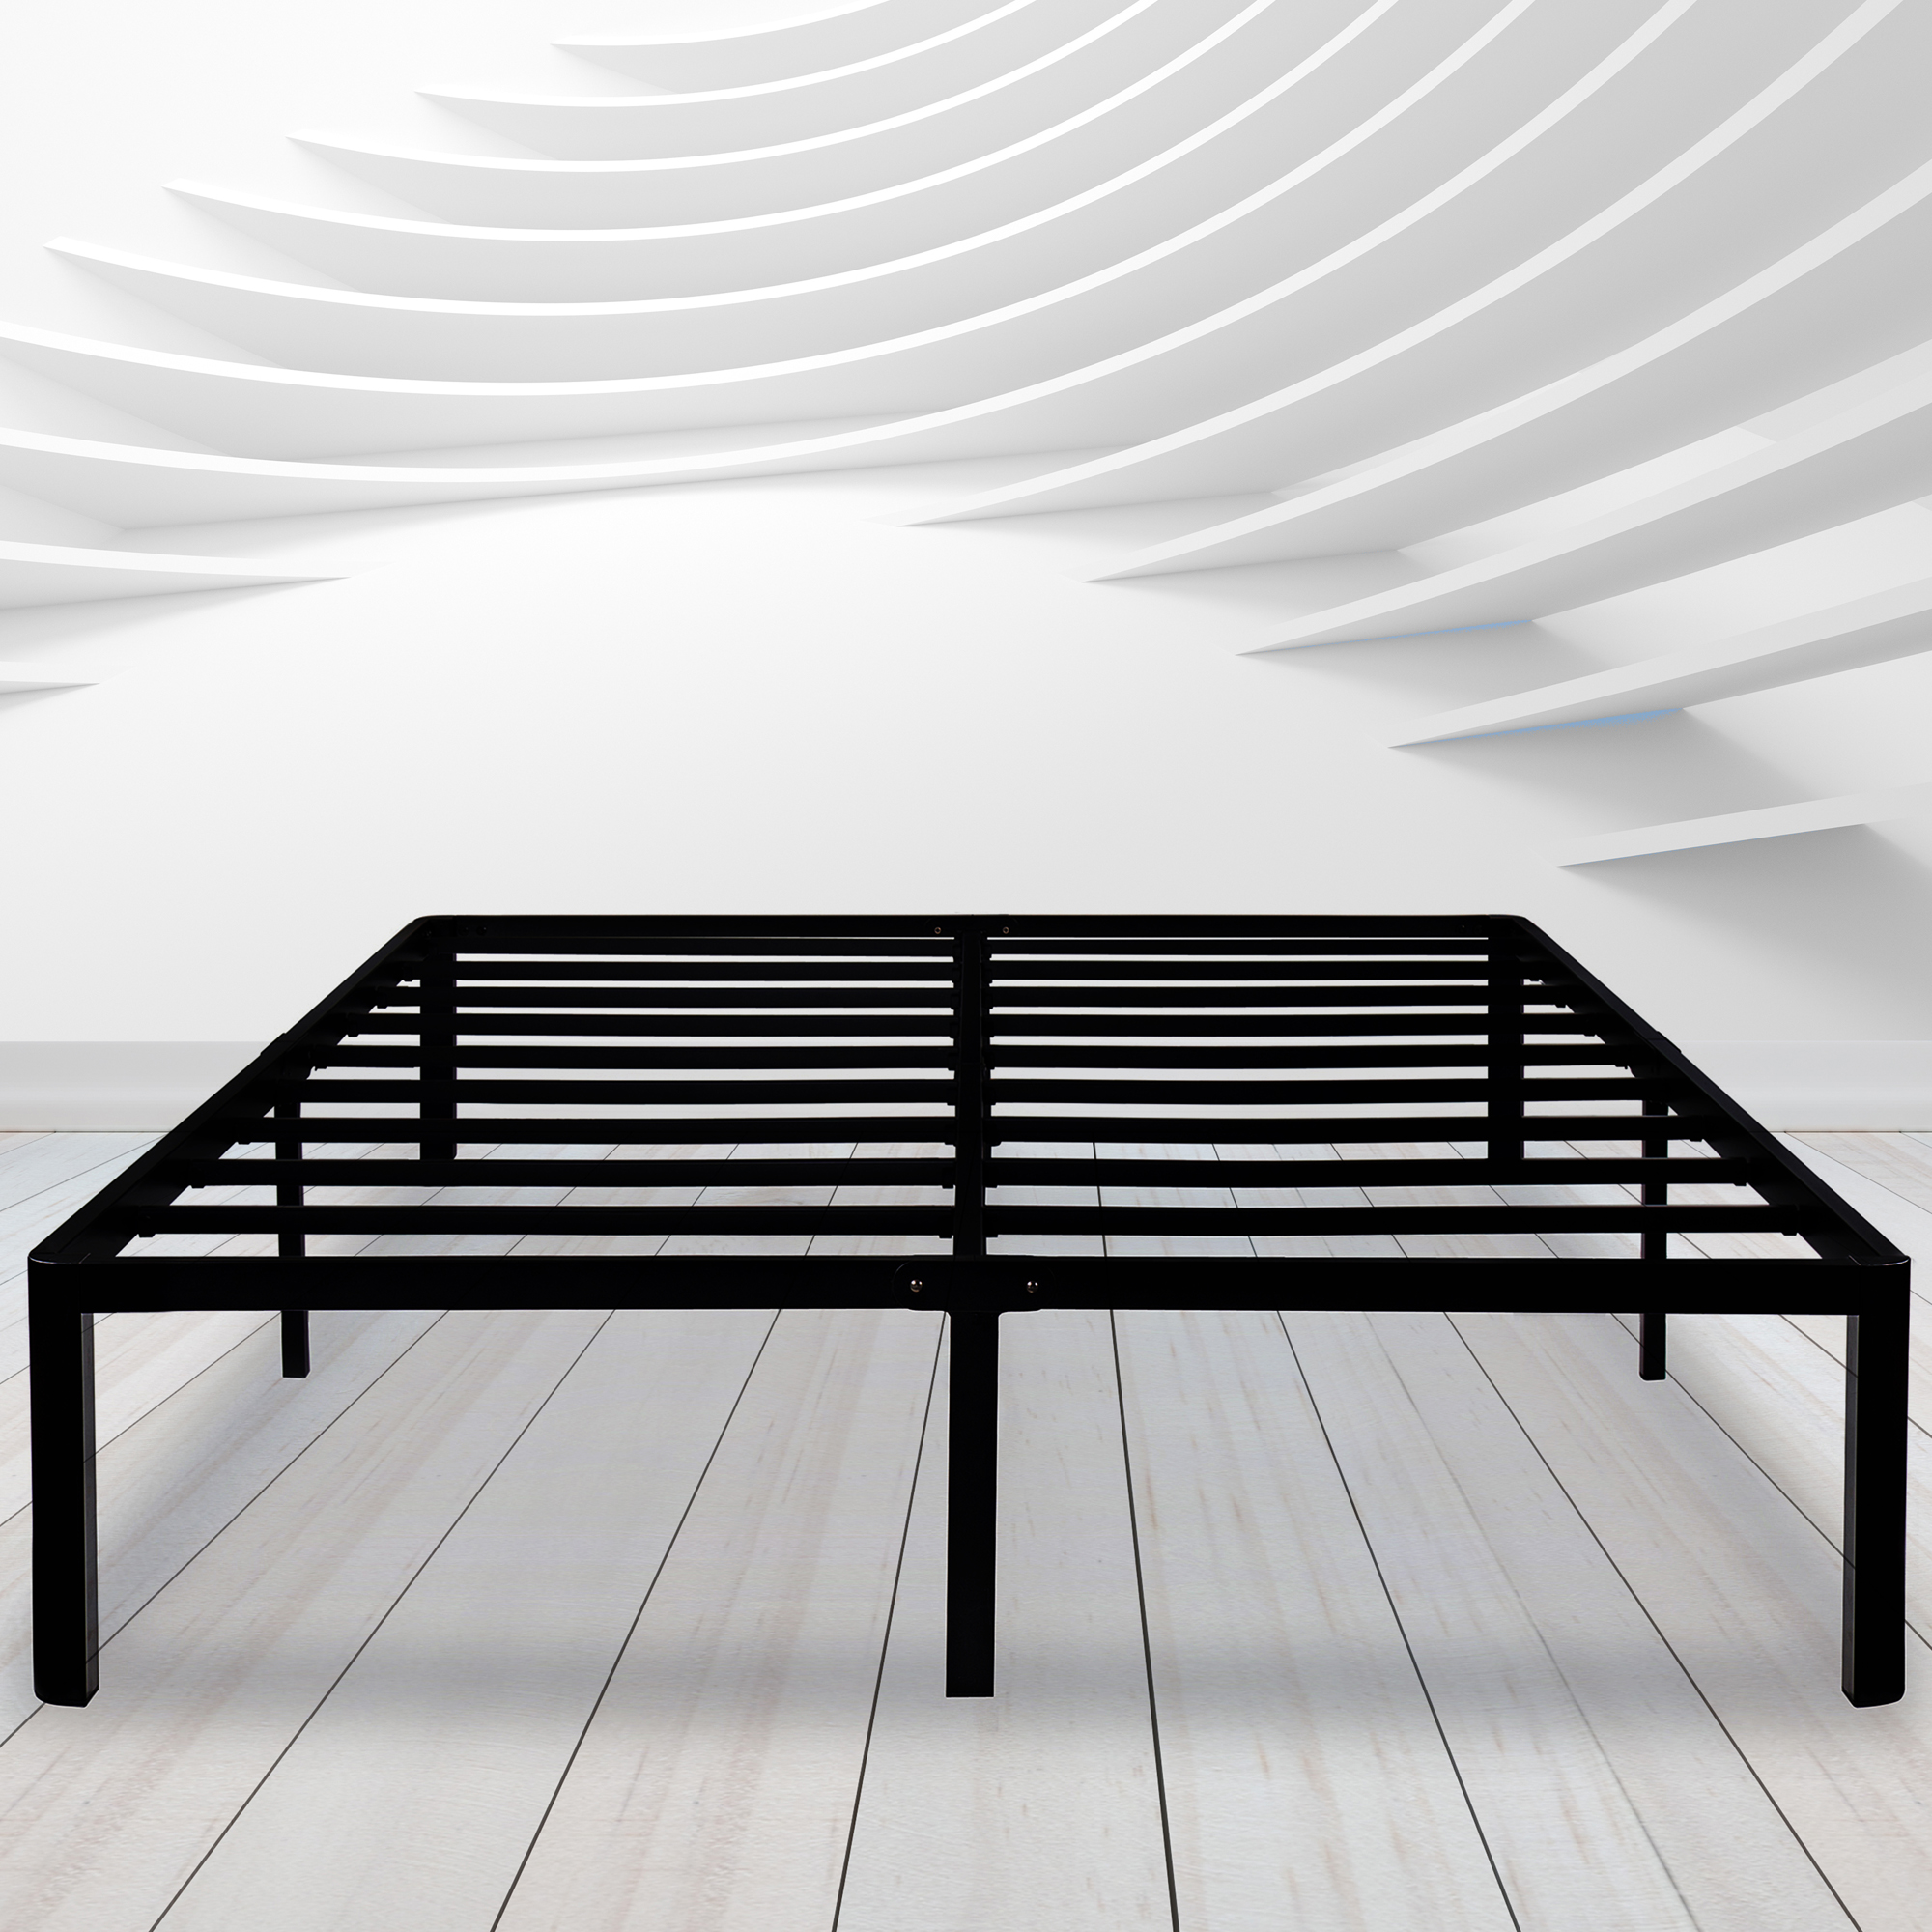 GranRest 14'' Round Corner Edge Durable Steel Bed Frame with Non-Slip Structure,Queen by Grantec Co., Ltd